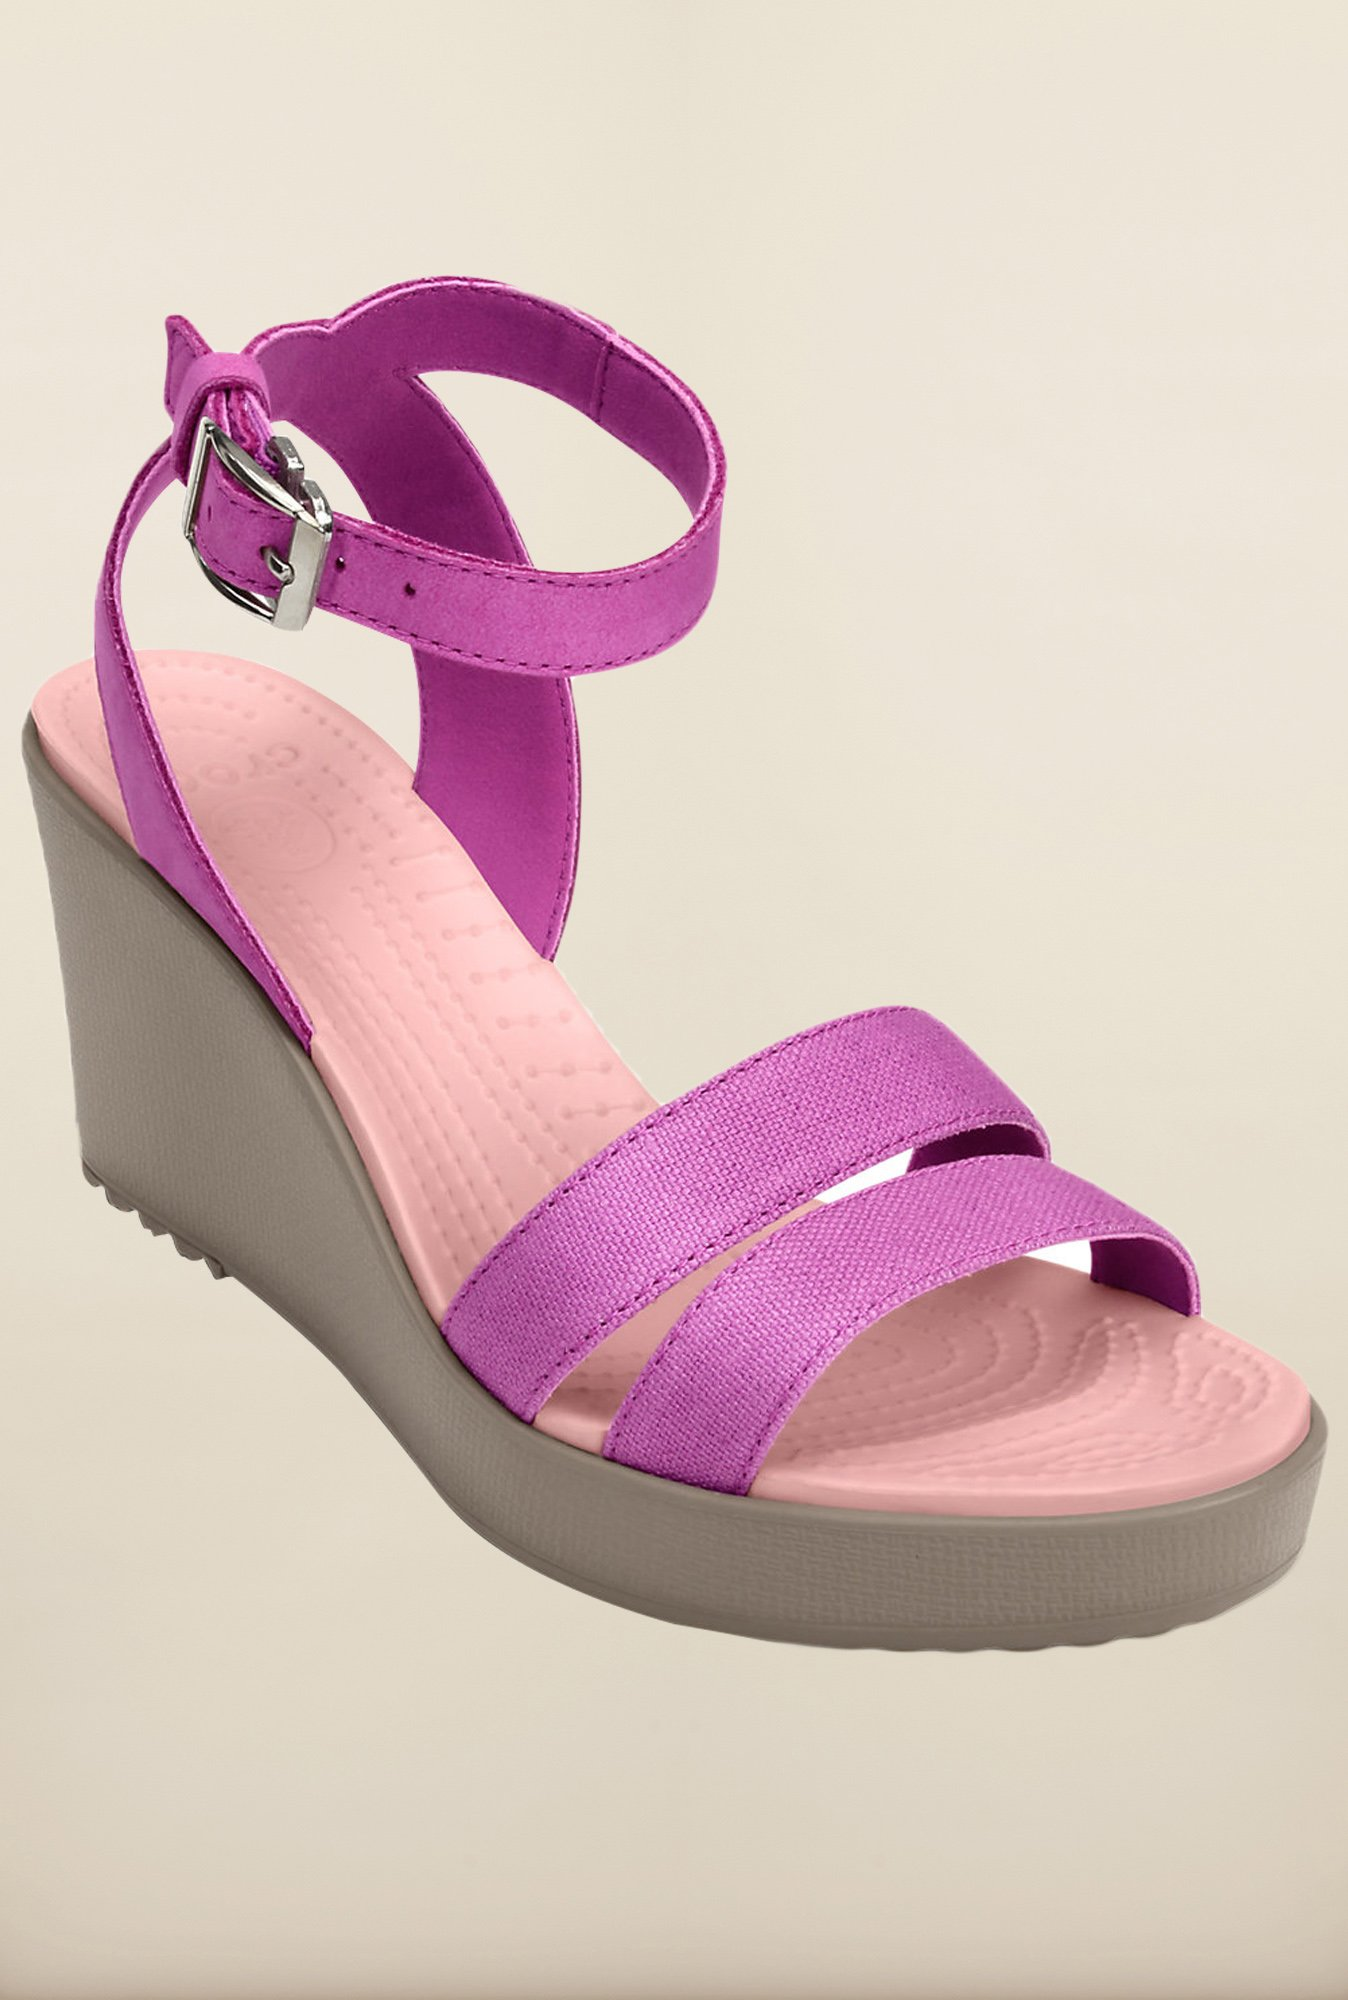 Crocs Leigh Purple Sandals